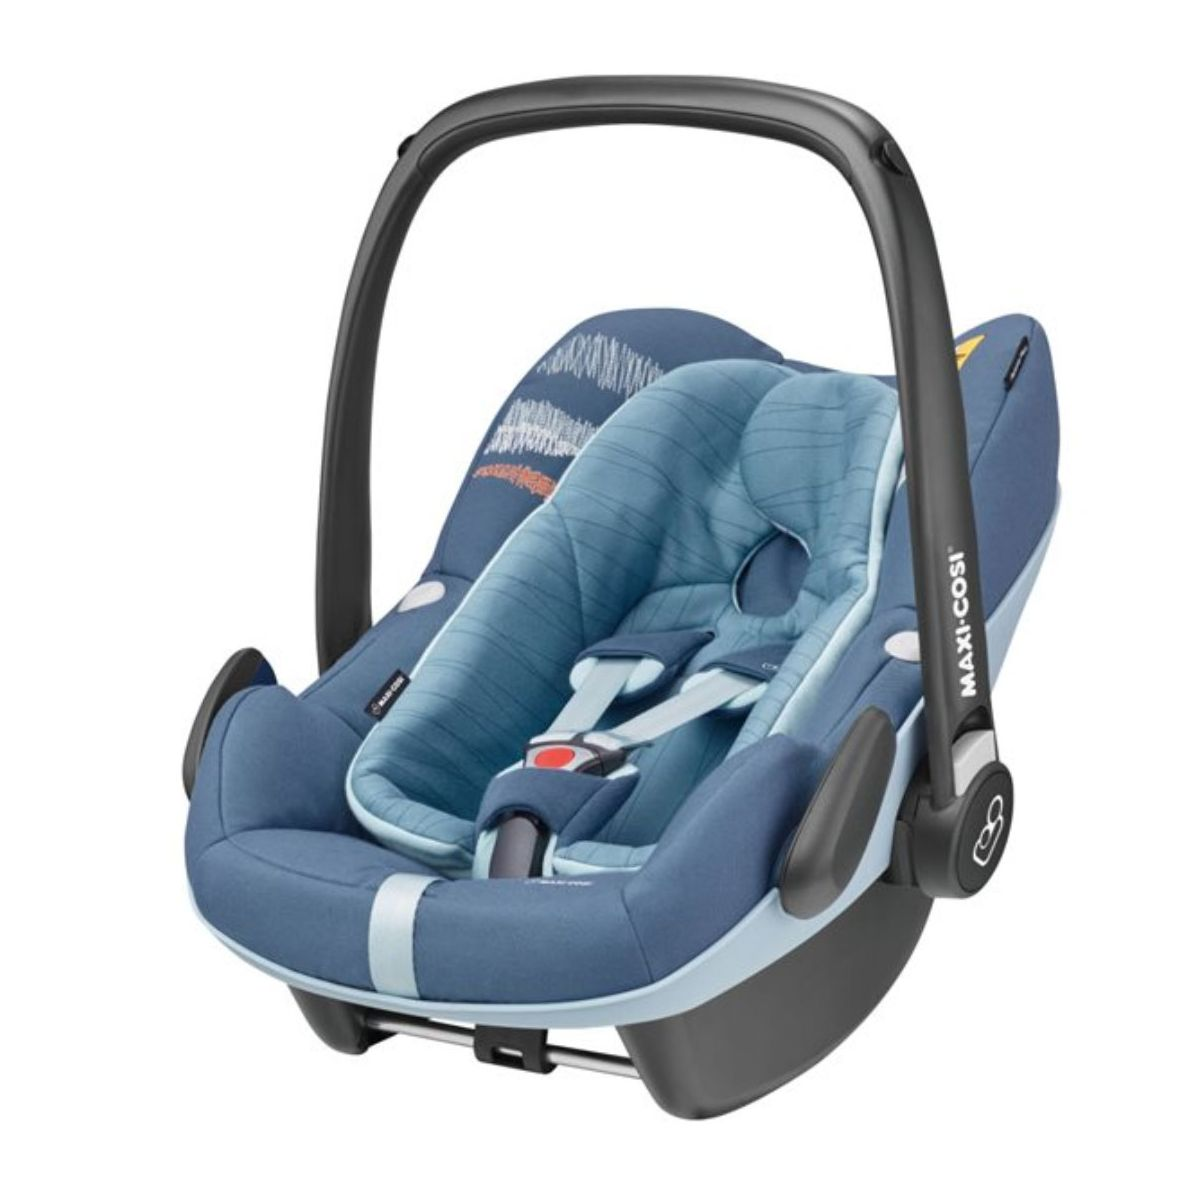 Maxi Cosi Pebble Plus Kaufen : maxi cosi pebble plus babyschale frequency blue kaufen ~ Blog.minnesotawildstore.com Haus und Dekorationen